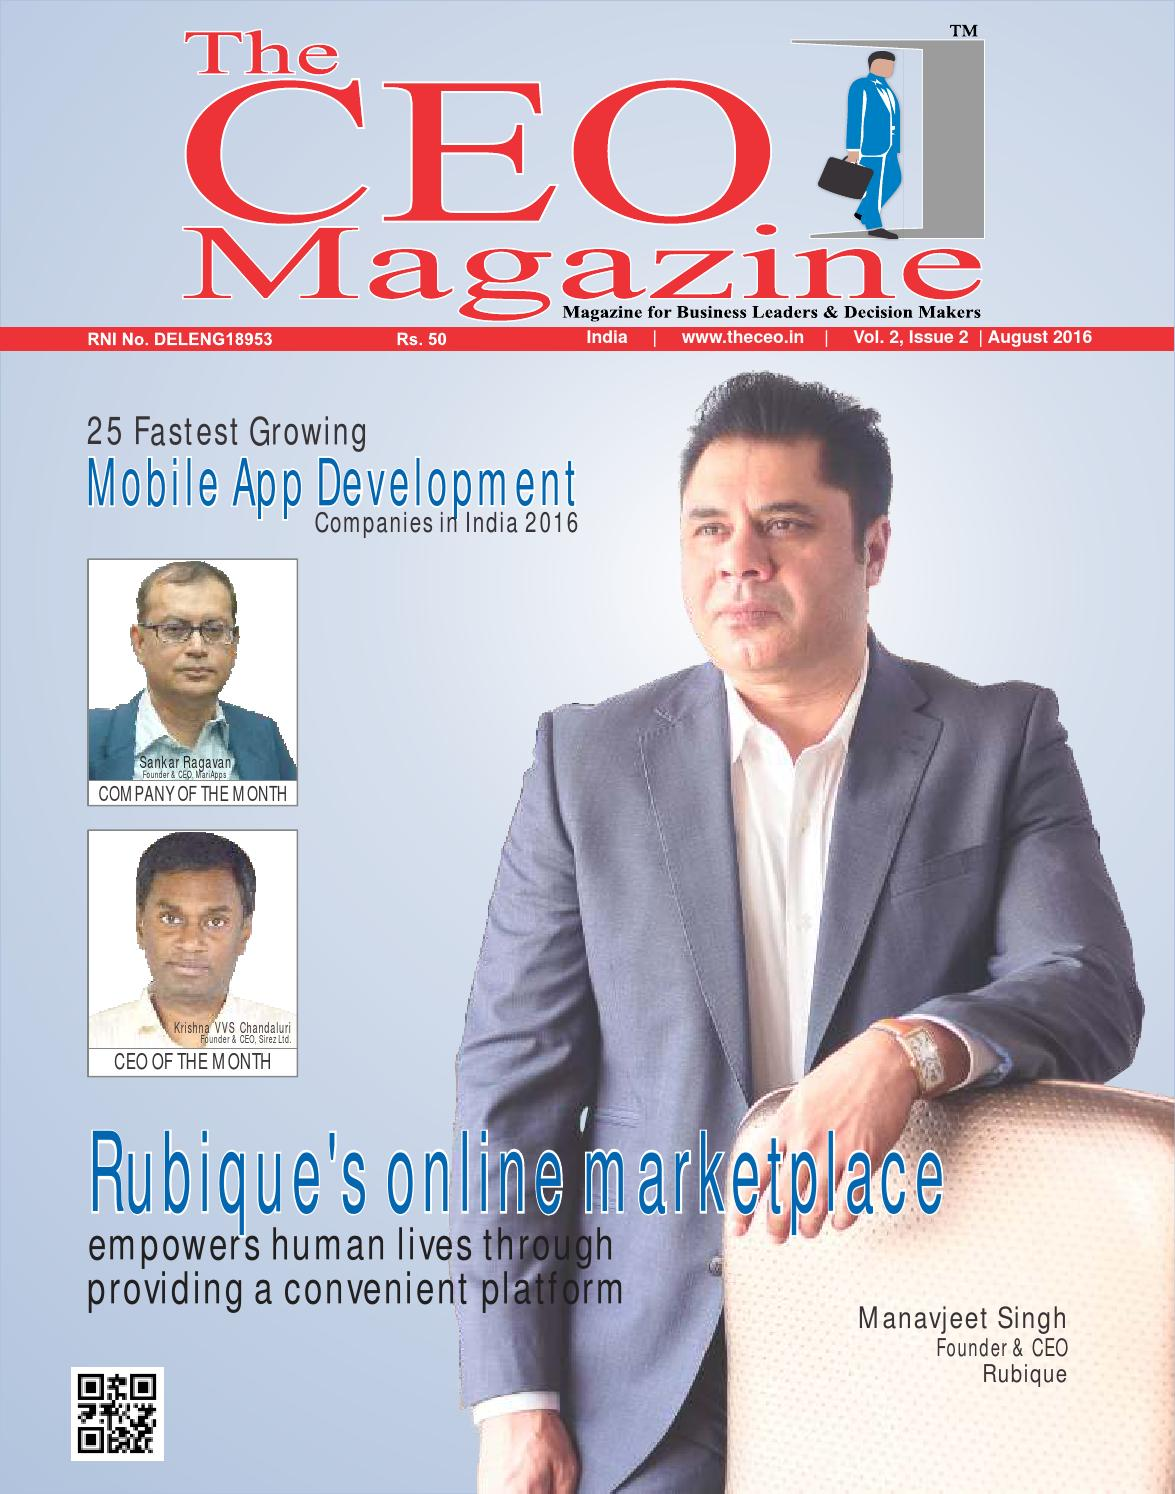 The ceo magazine august 2016 mobile app development by indiamanthan issuu